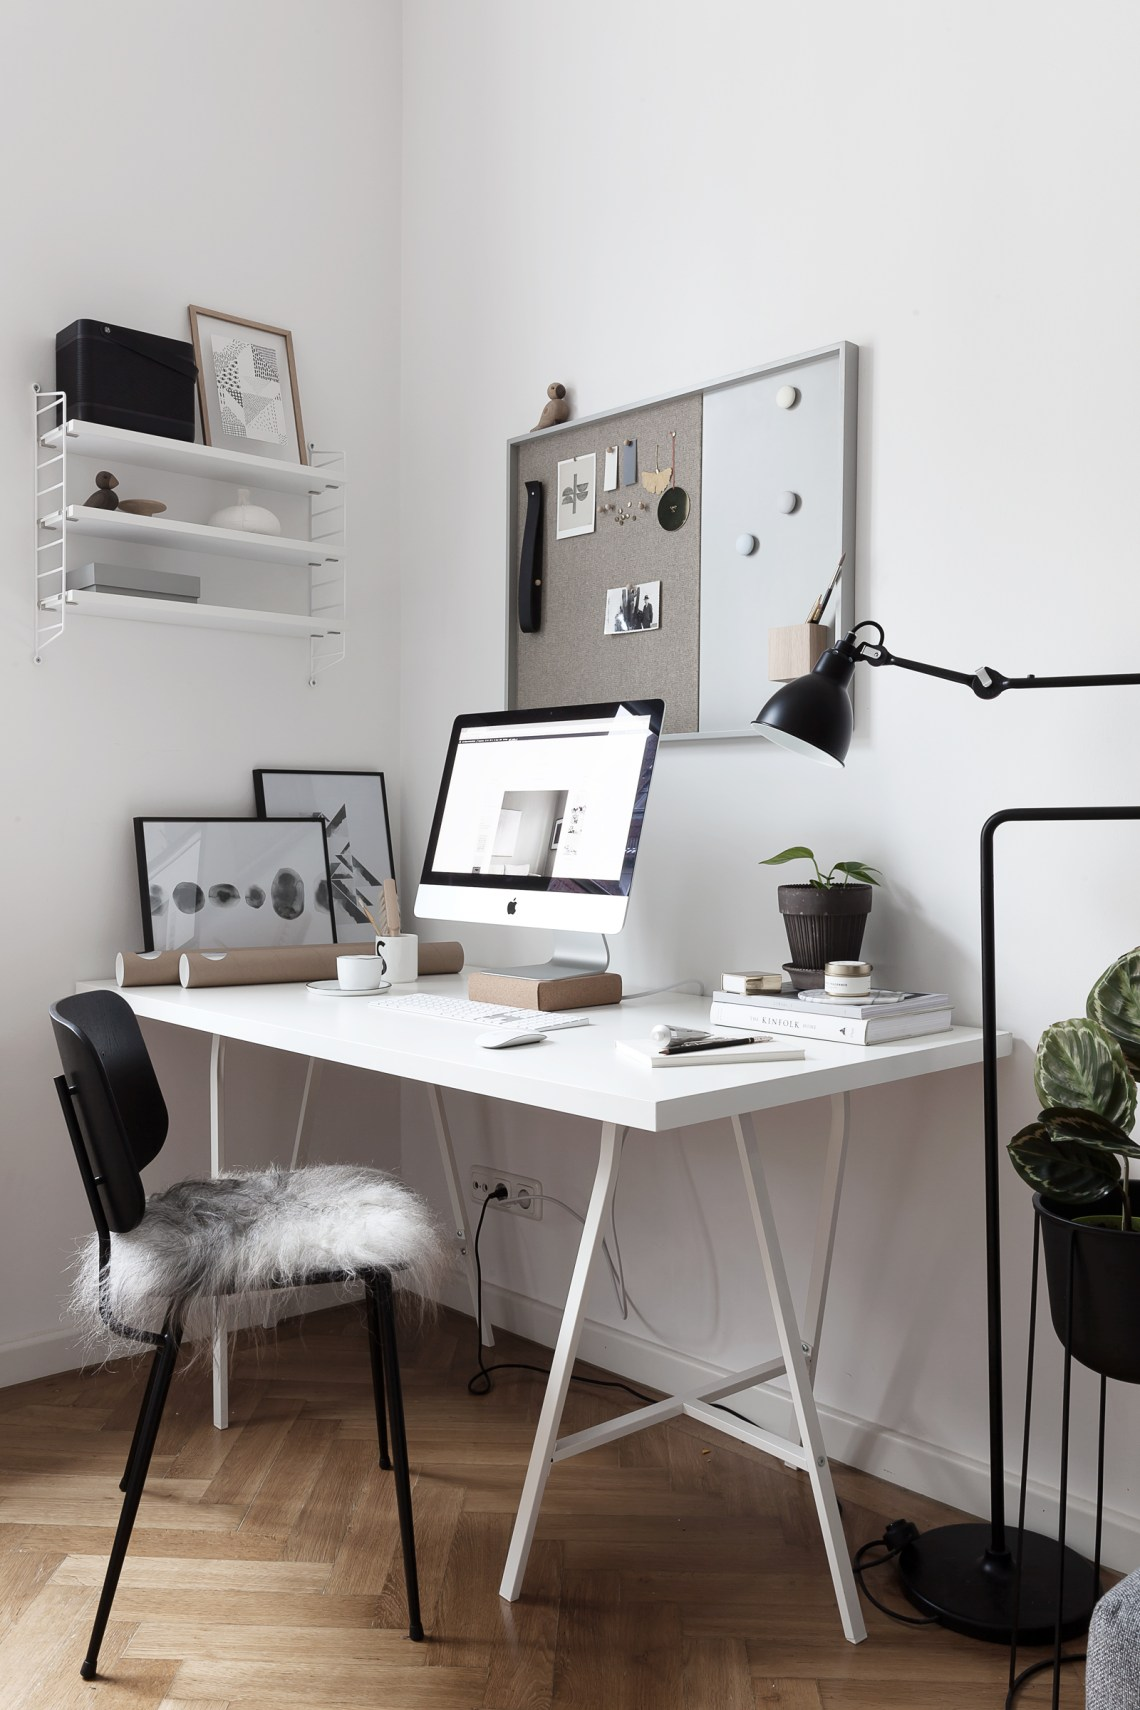 Peak into my office - via Coco Lapine Design blog